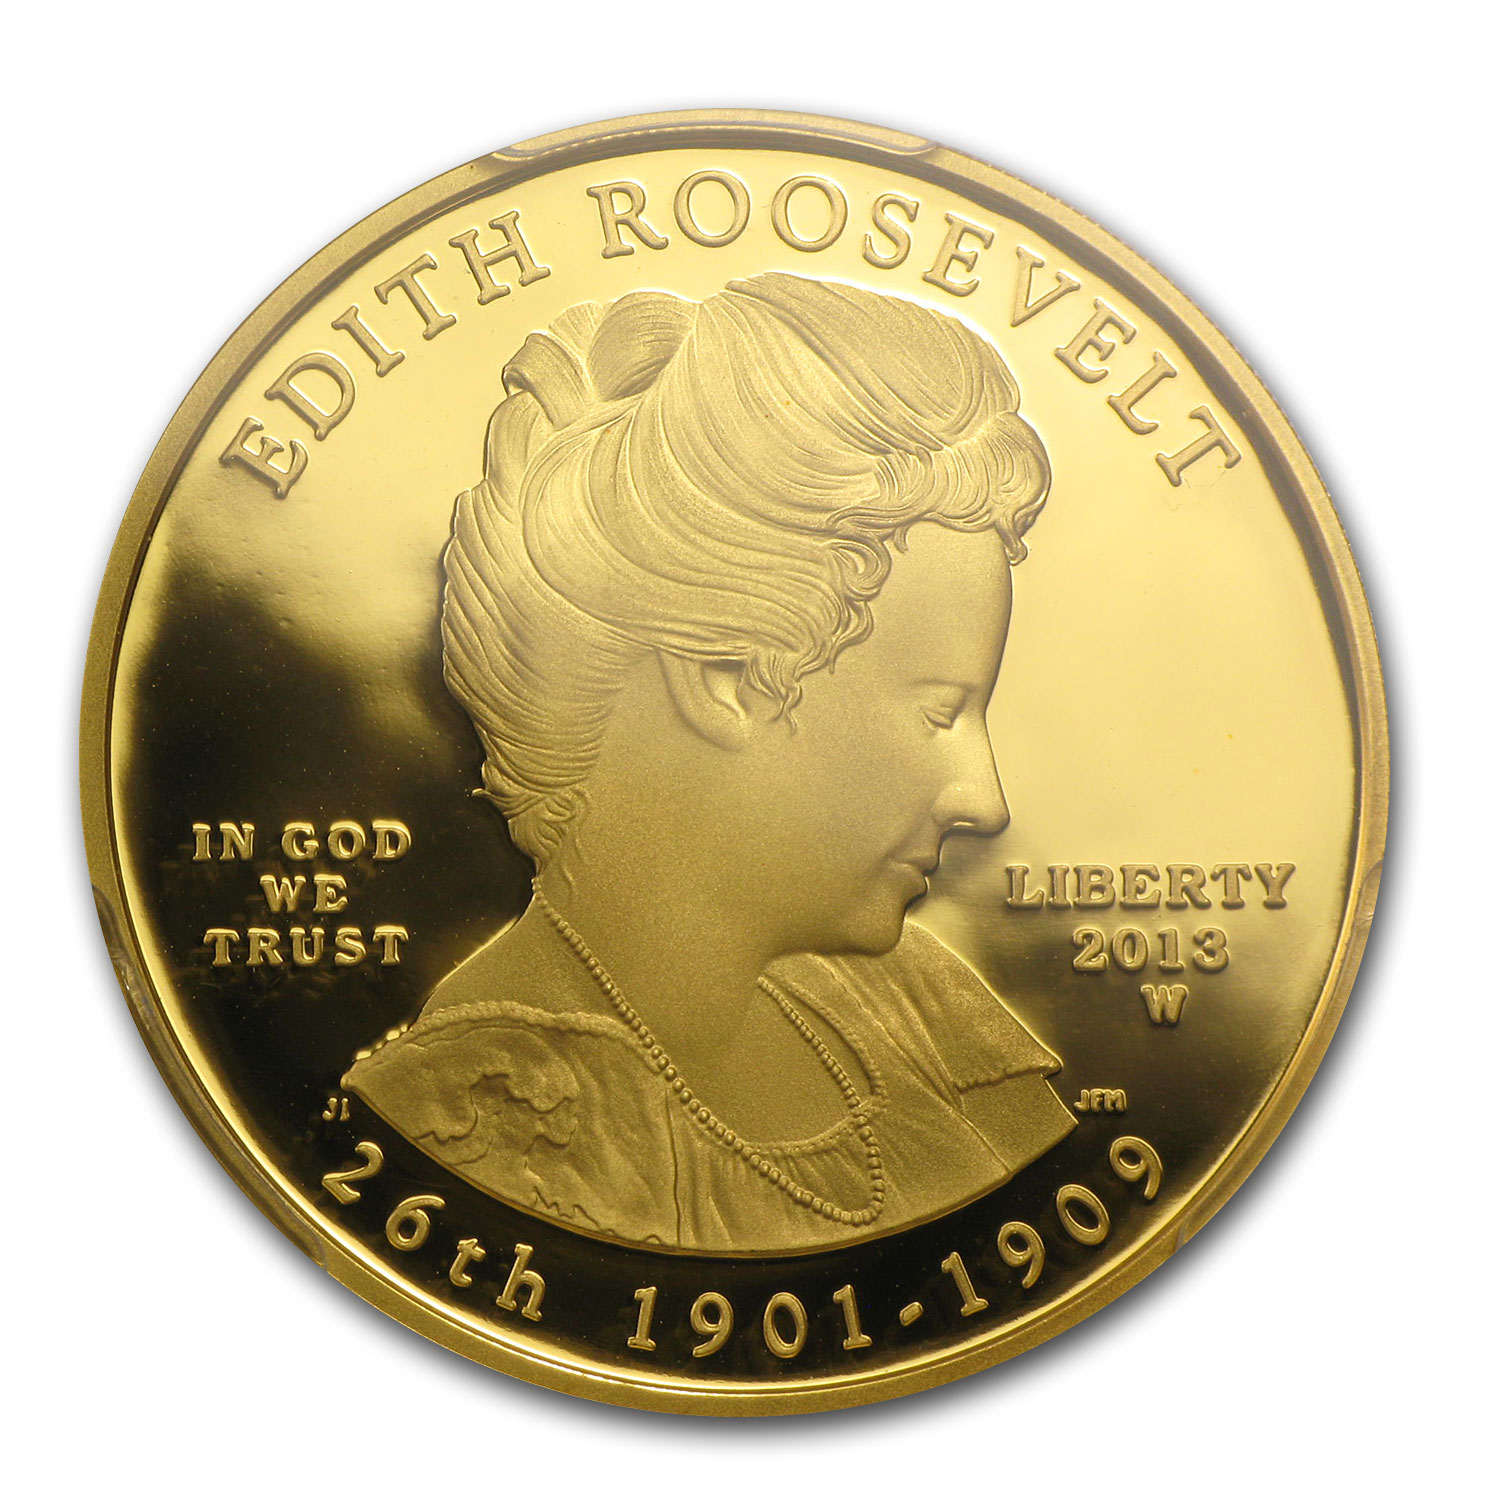 2013-W 1/2 oz Proof Gold Edith Roosevelt PR-70 PCGS (FS)